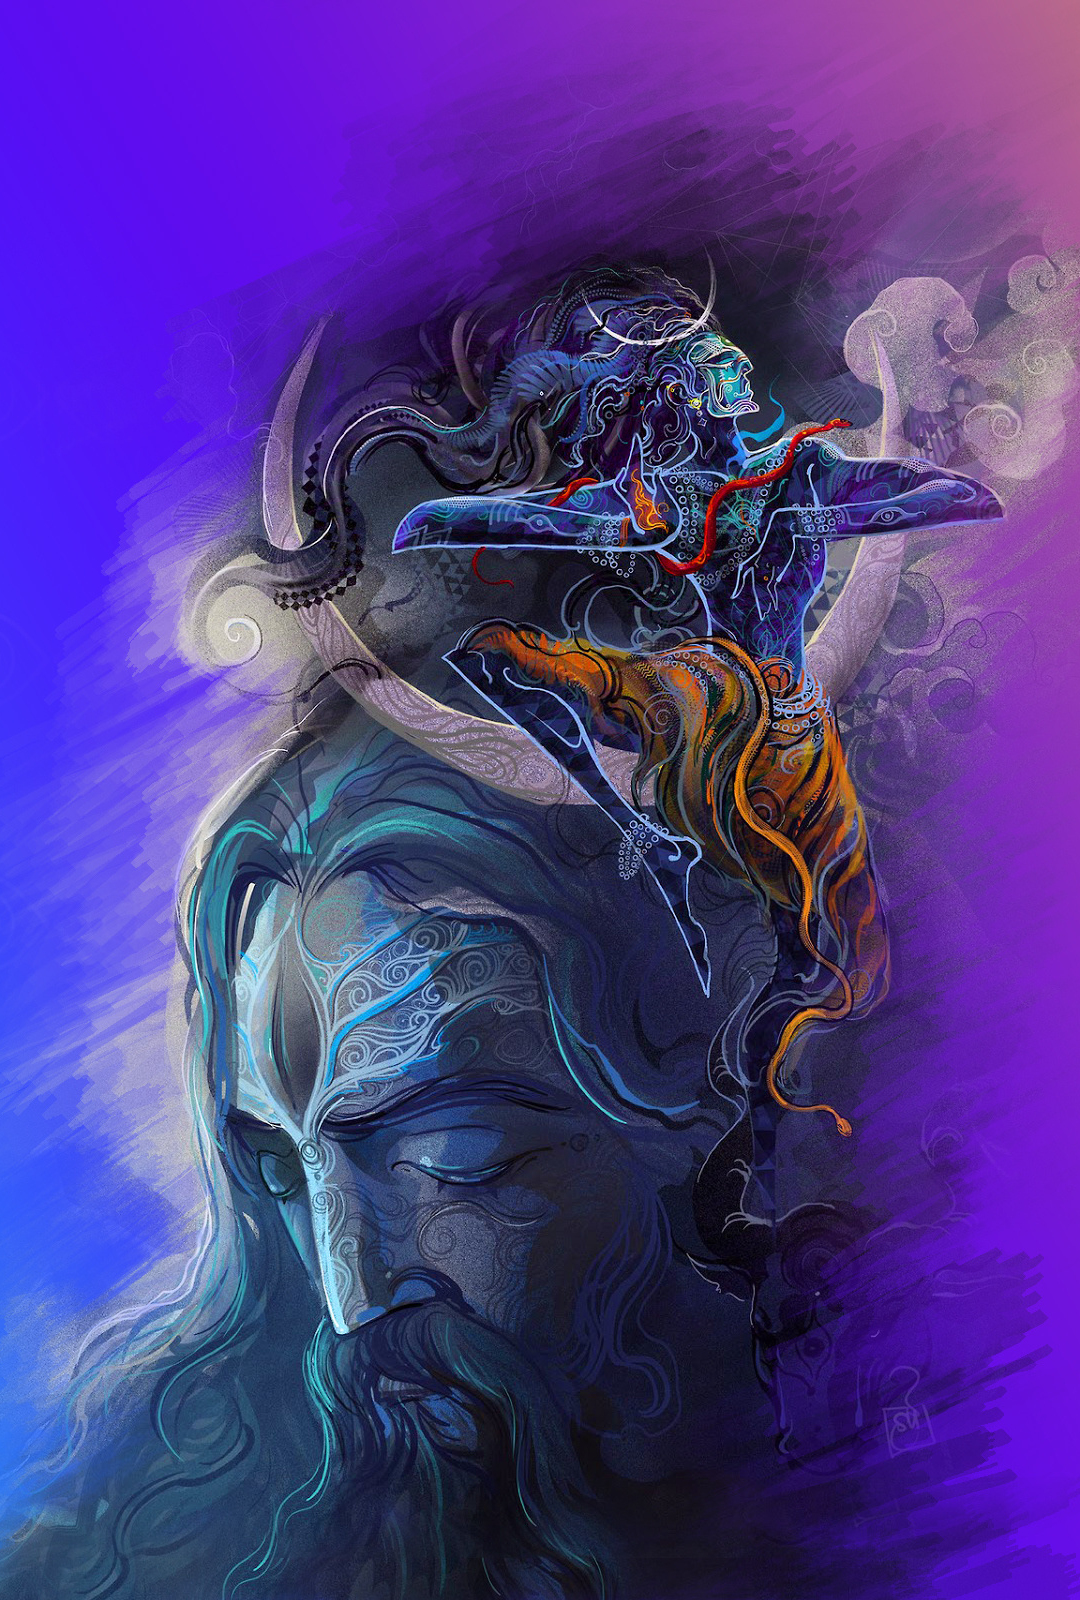 Lord Shiva Hd Wallpapers Download - 1080x1600 - Download ...